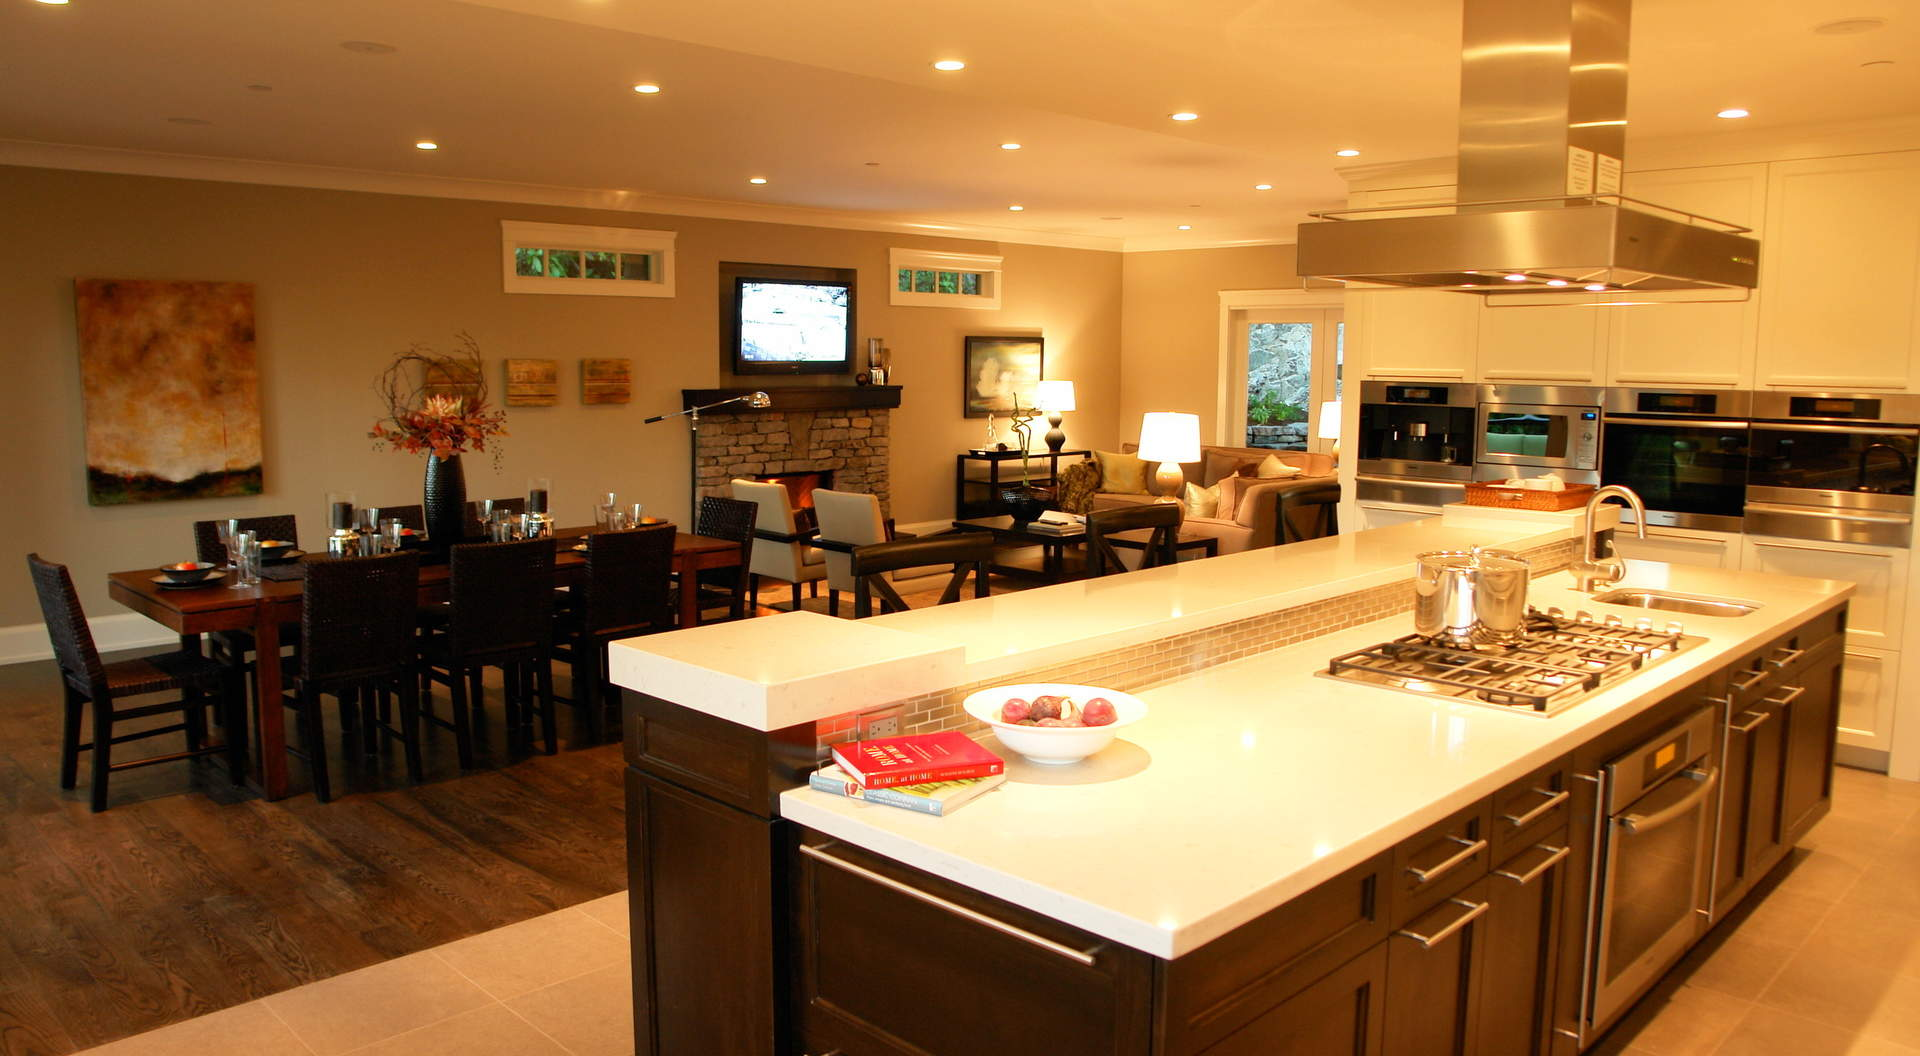 Spectacular Kitchen with Eating Area and Adjacent Family Room